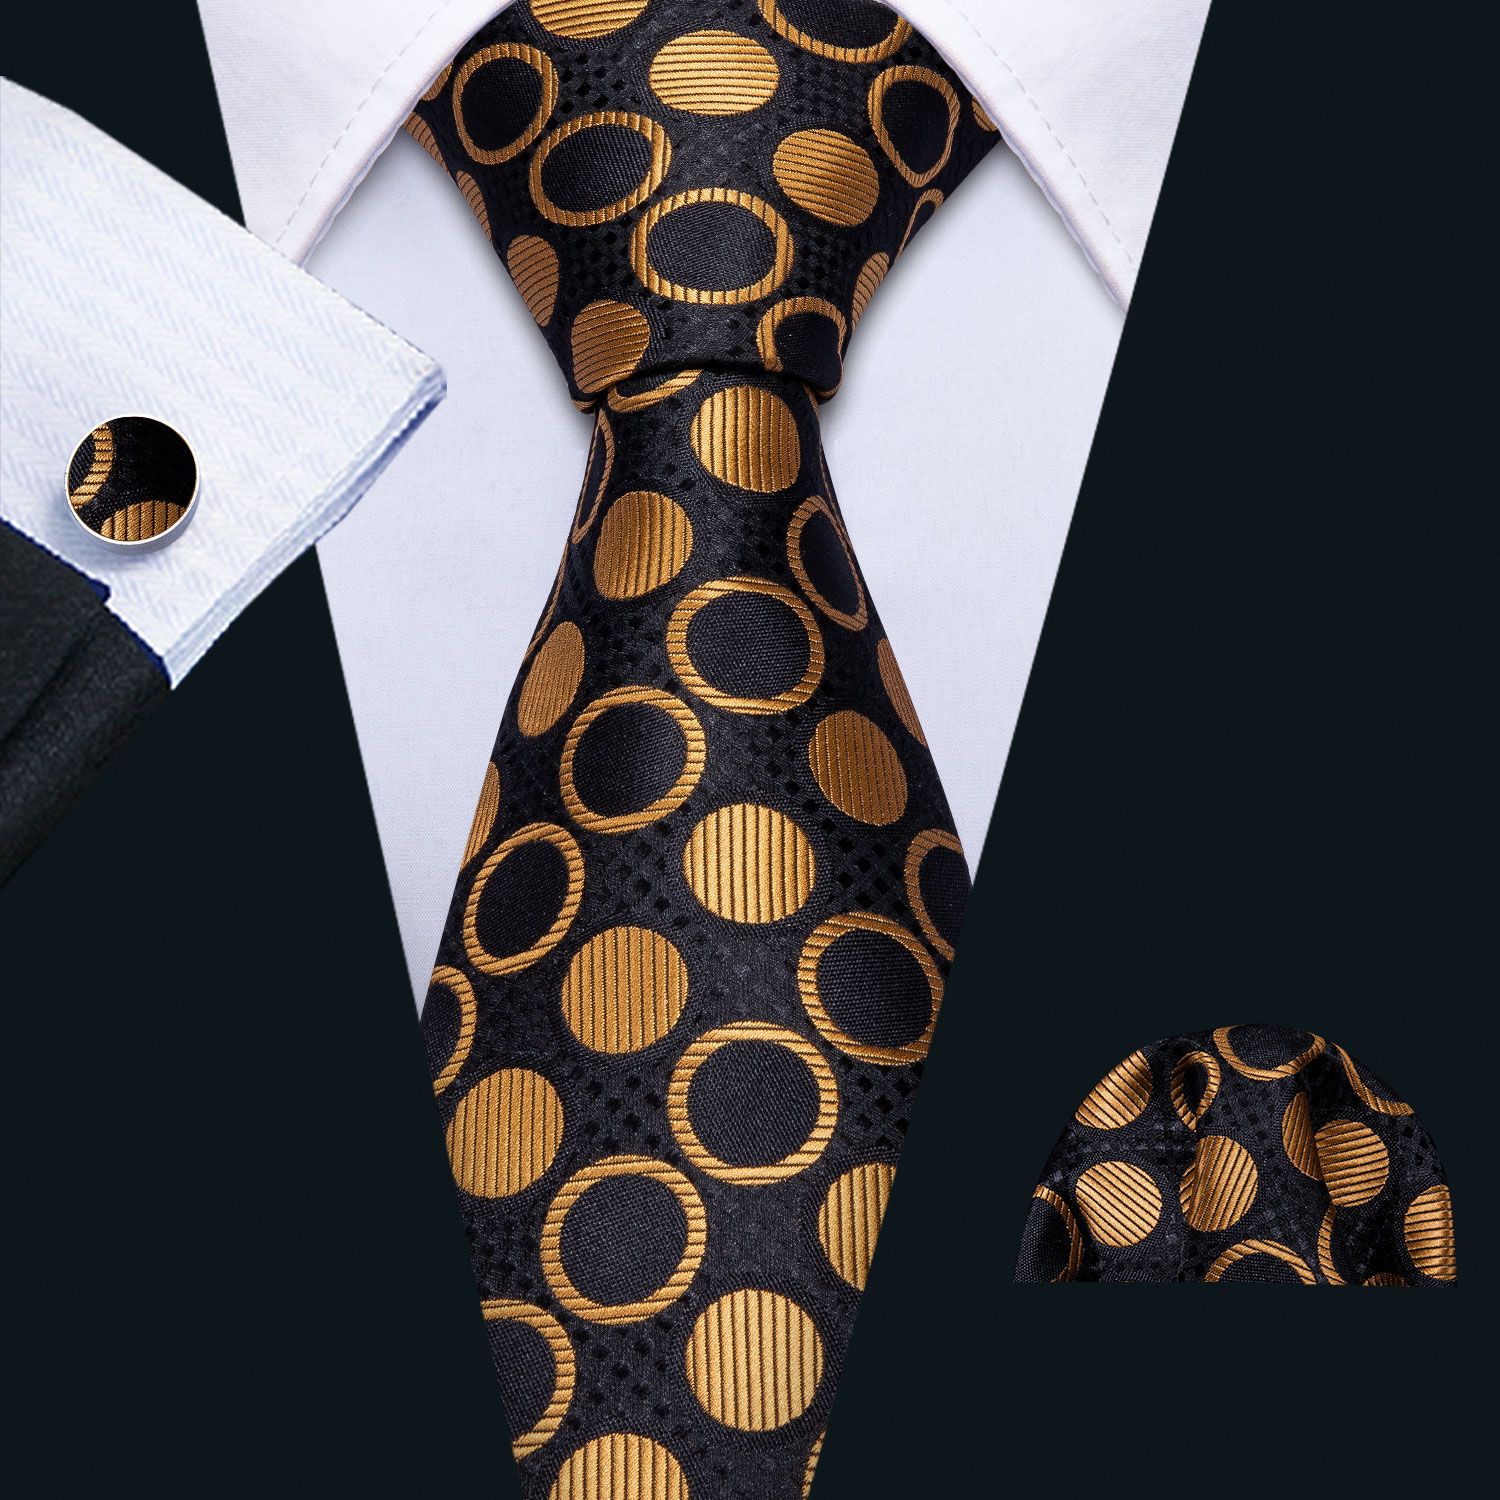 2019 Mens Wedding Tie Gold Dot Silk Tie Hanky Set Barry.Wang Jacquard Party Woven Fashion Designer Neck Ties For Men FA-5137